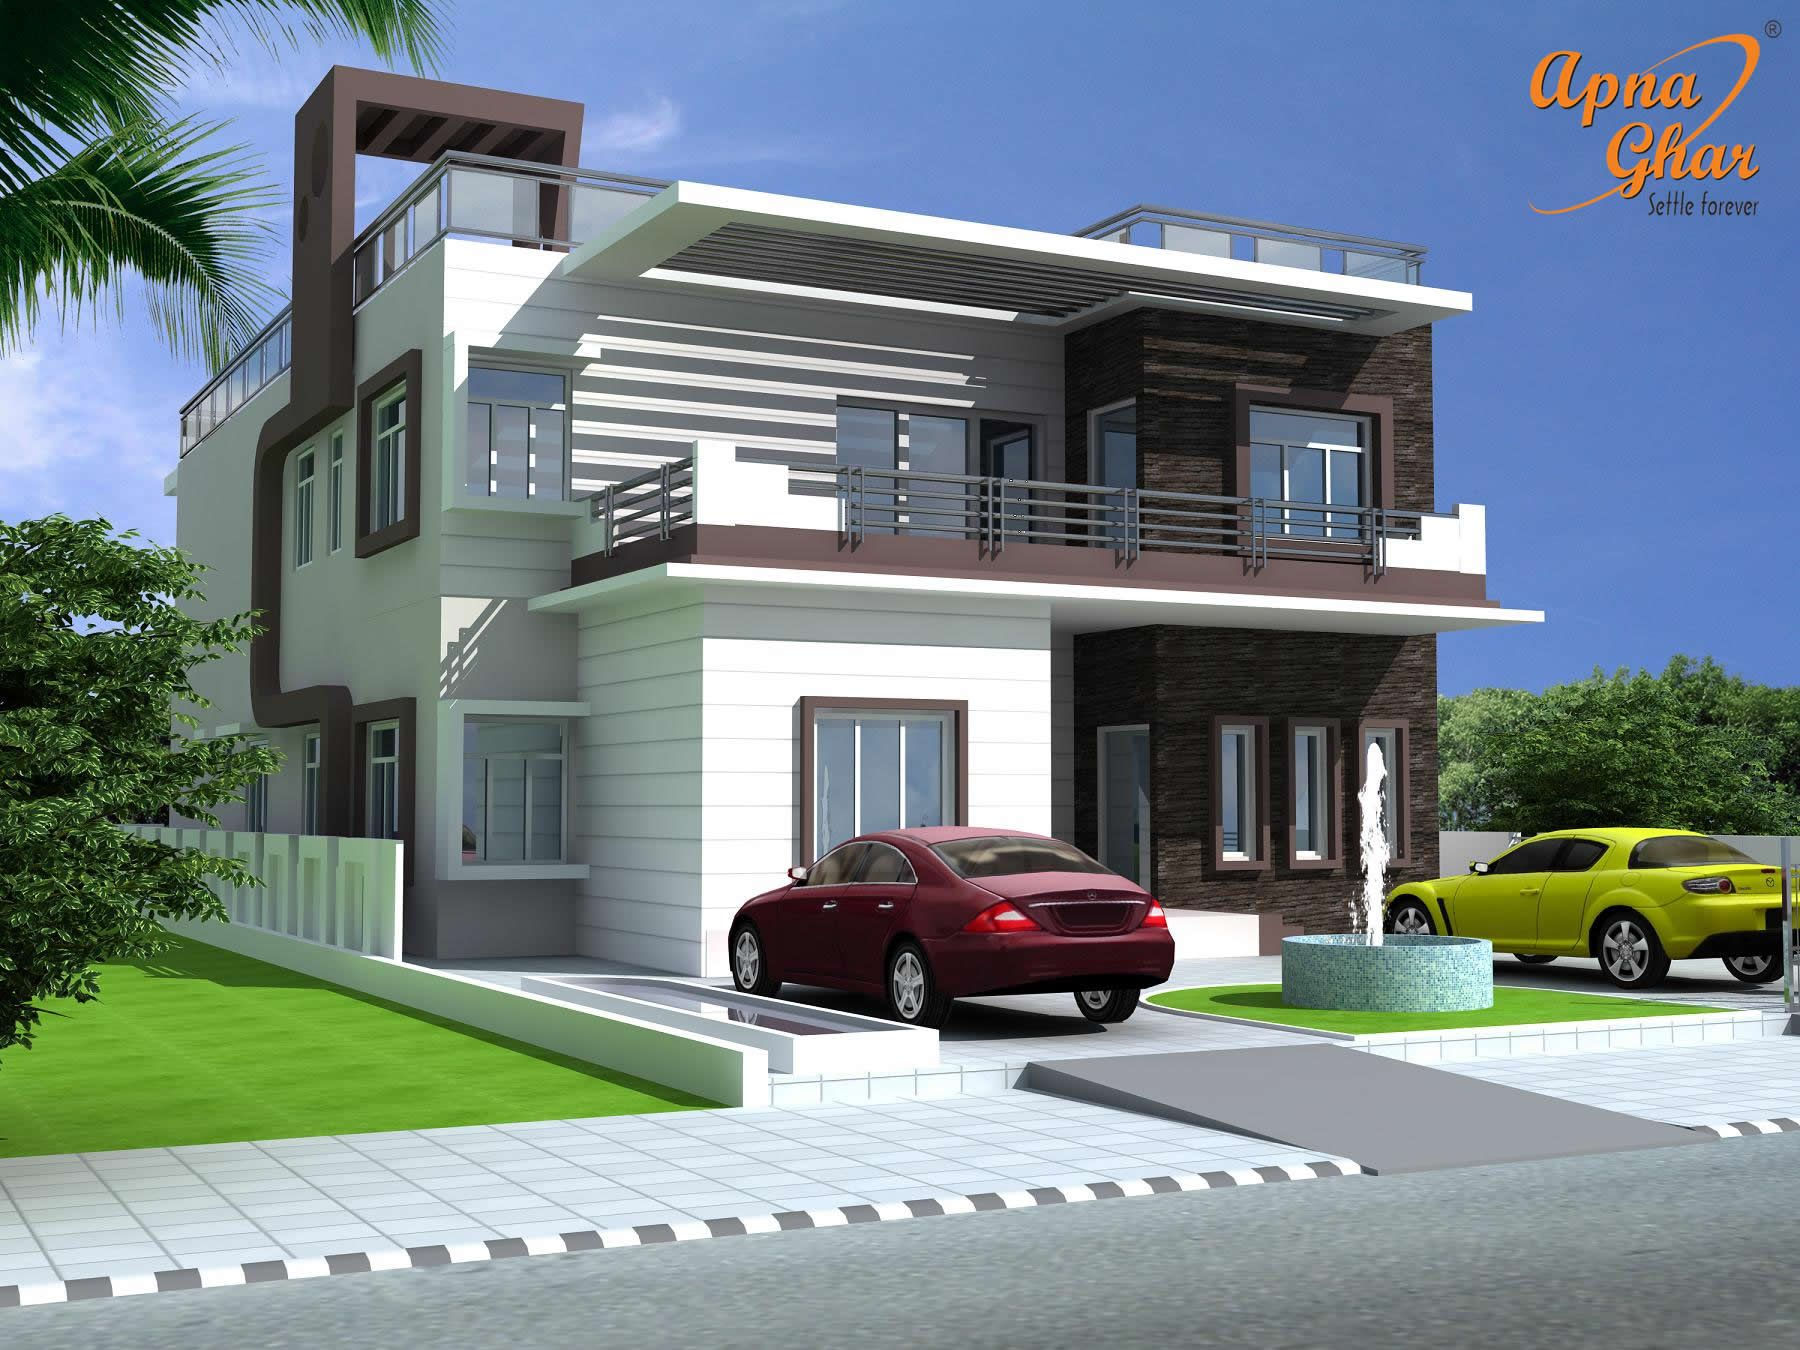 6 bedrooms duplex house design in 390m2 13m x 30m click for Duplex plan design